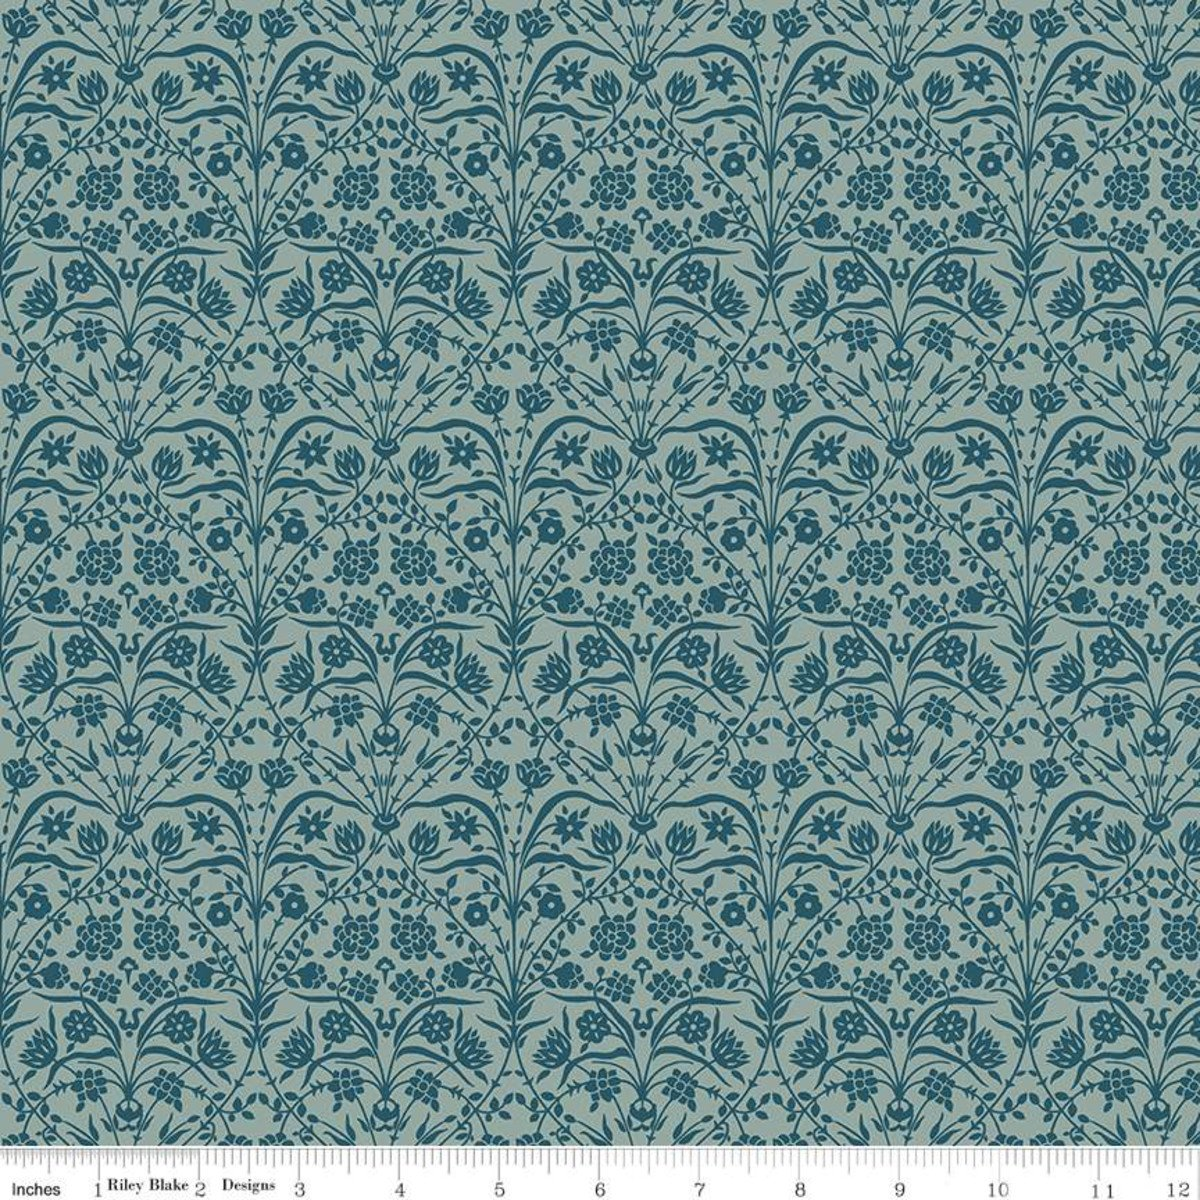 Liberty Winterbourne Bankart Silhouette - Teal